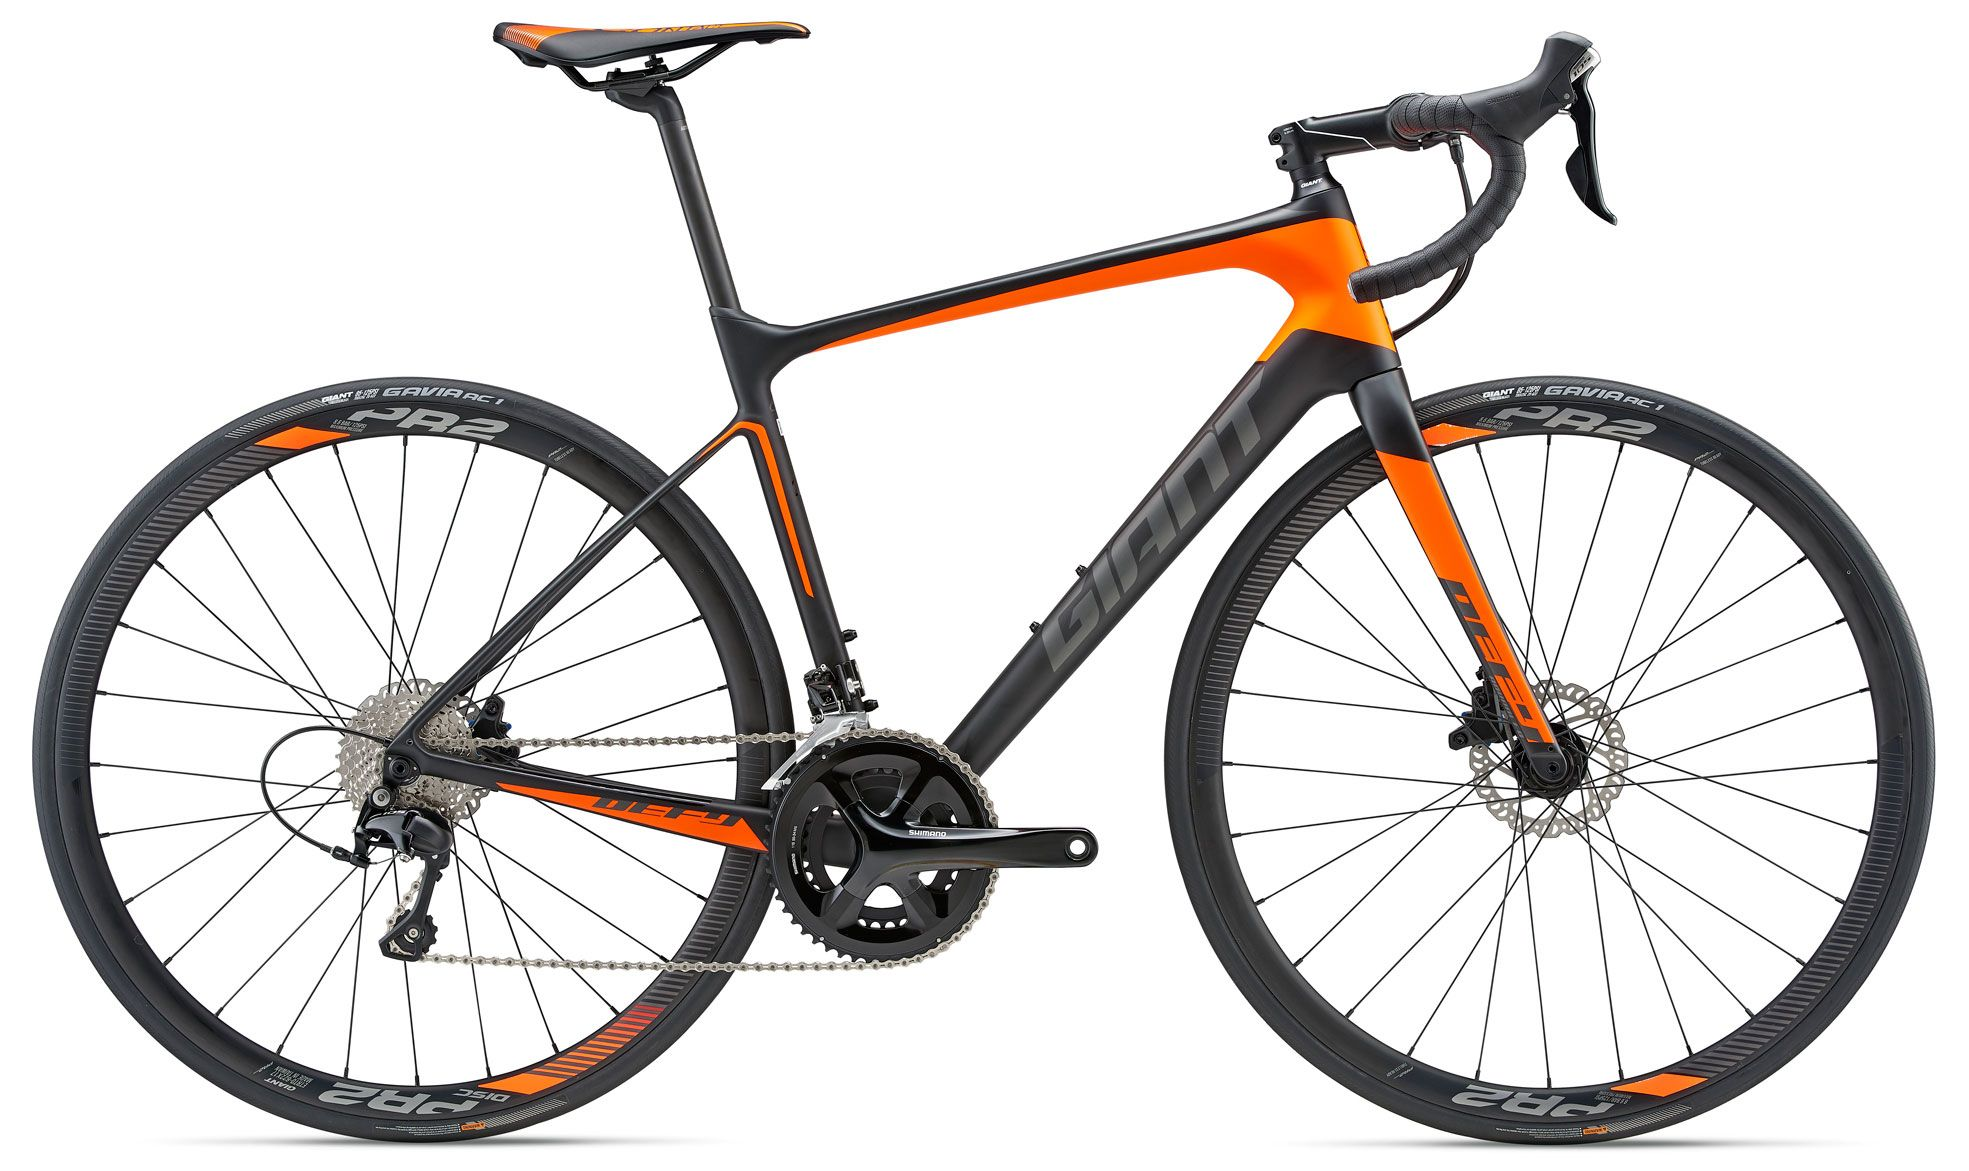 Велосипед Giant Defy Advanced 2 2018 велосипед giant tcr composite 2 compact 2014